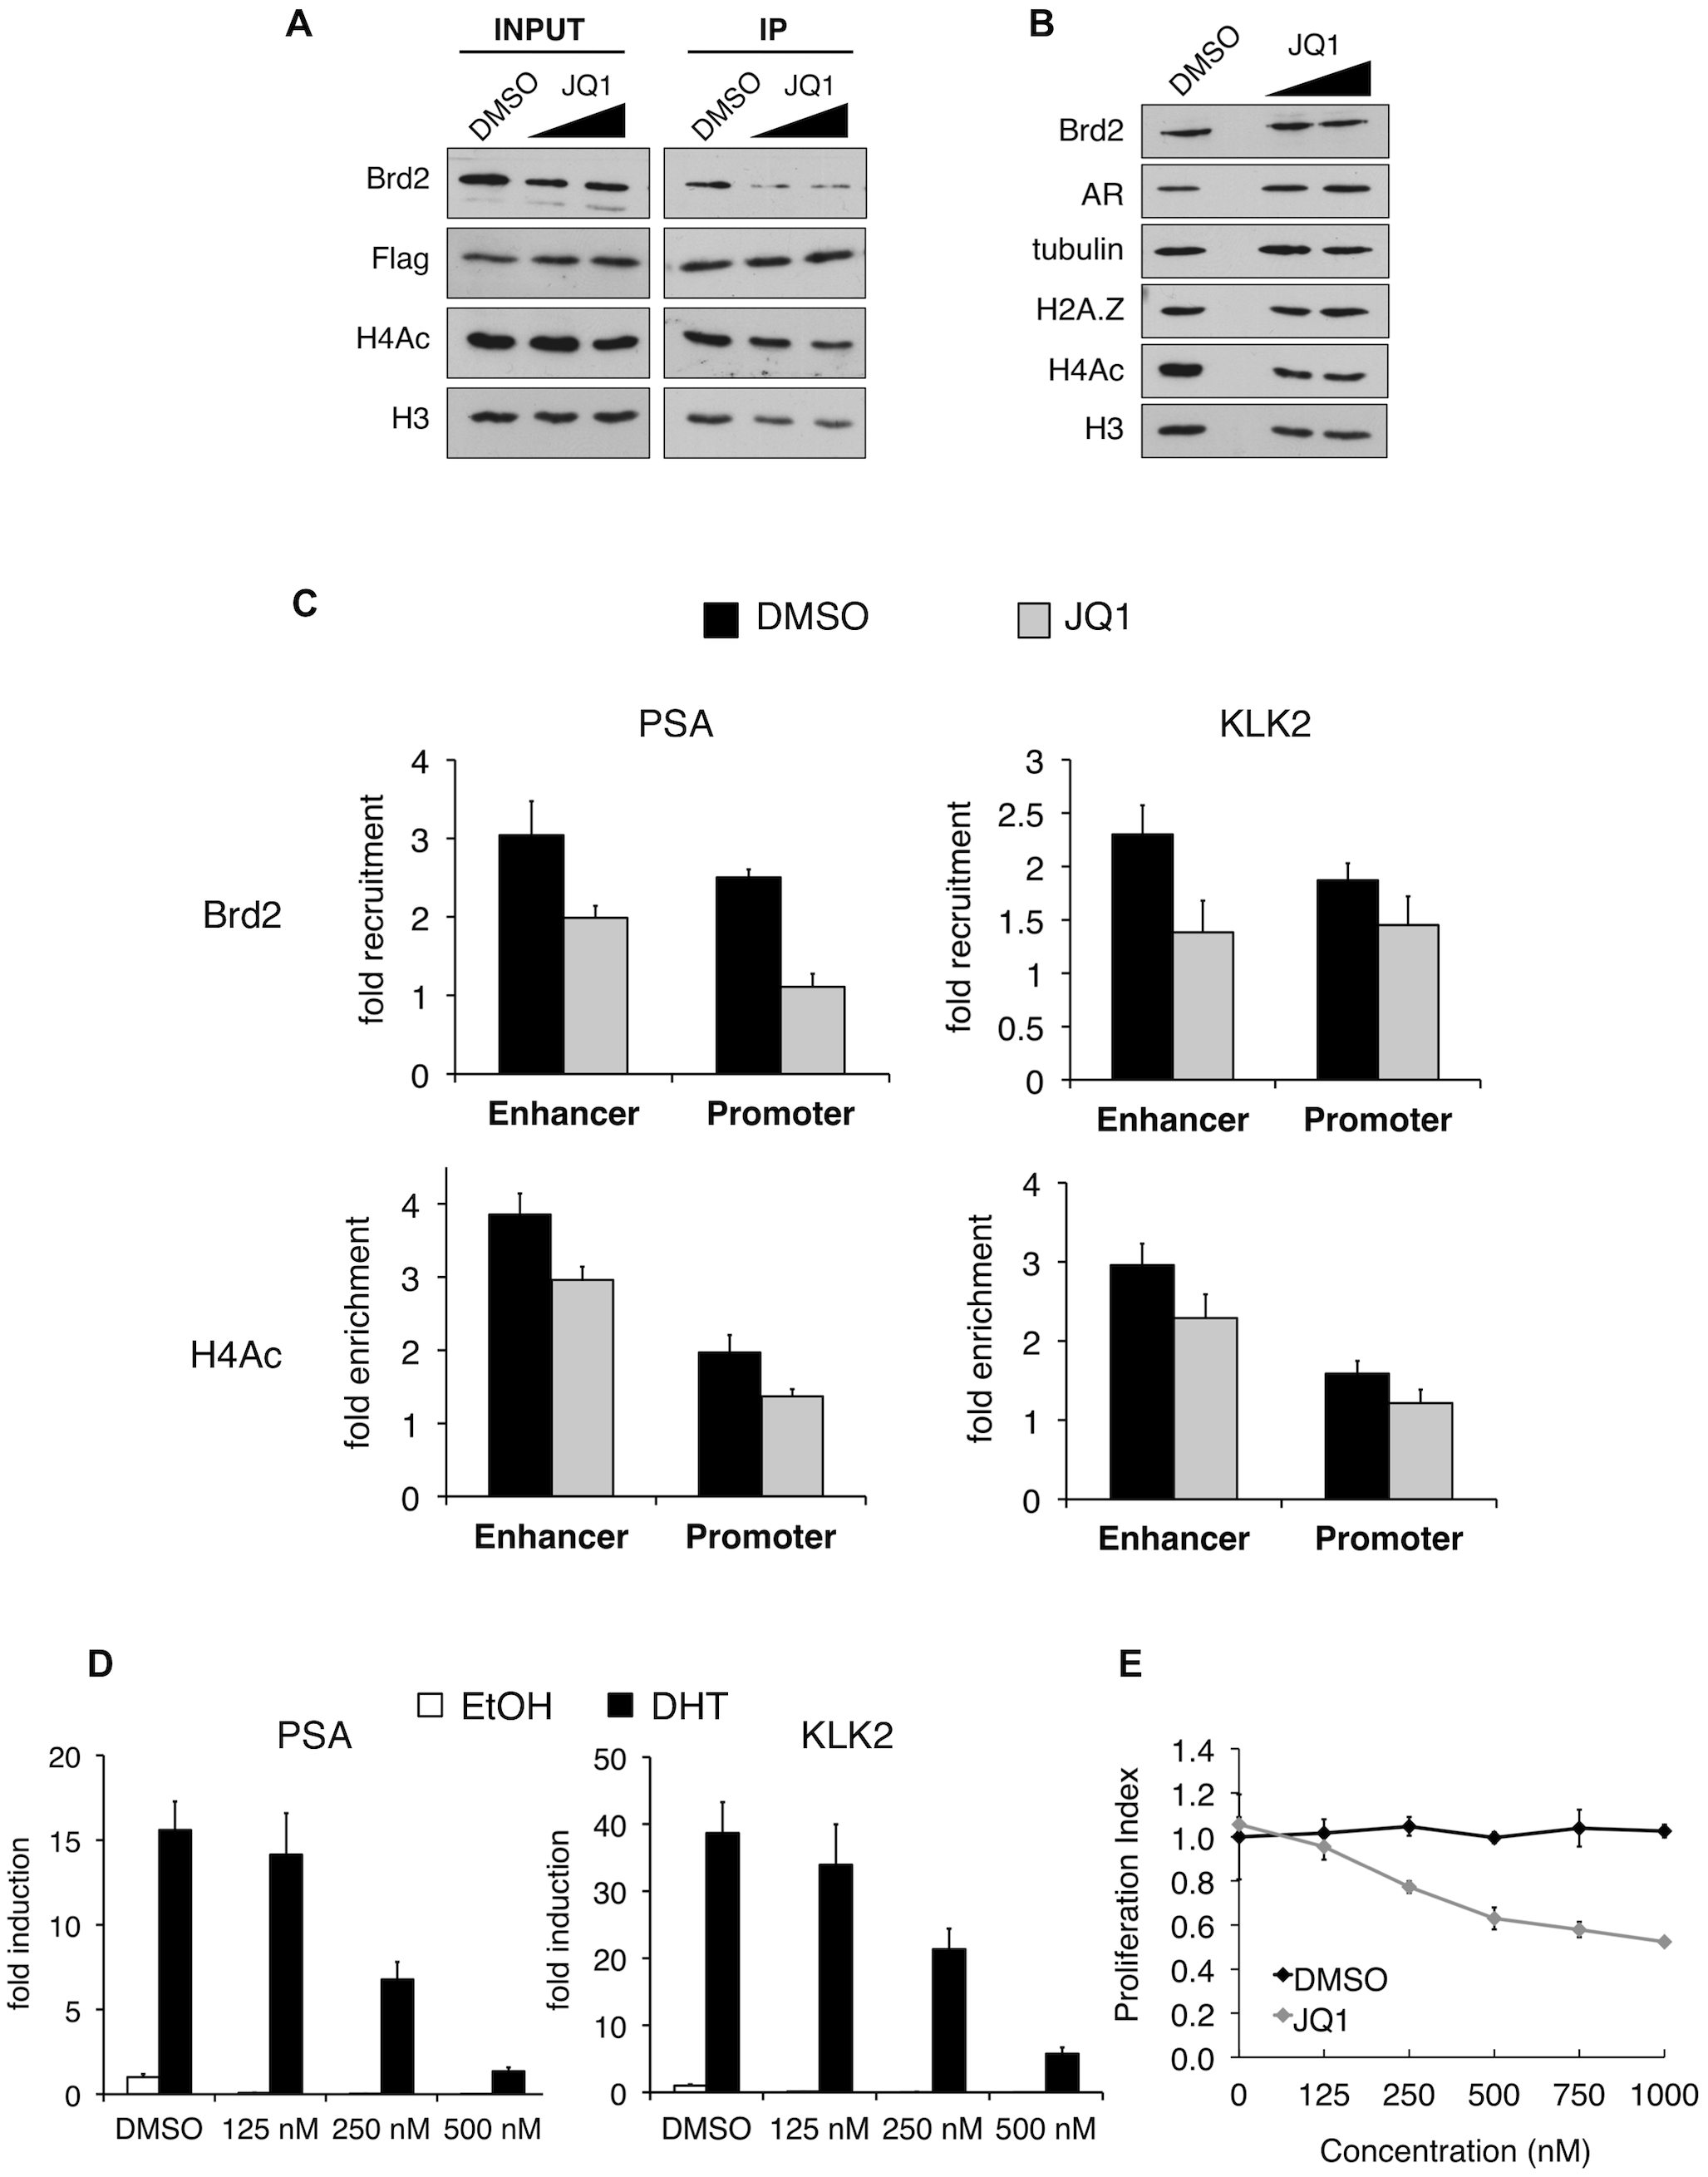 In vitro and in vivo effects of bromodomain inhibition by JQ1 treatment.